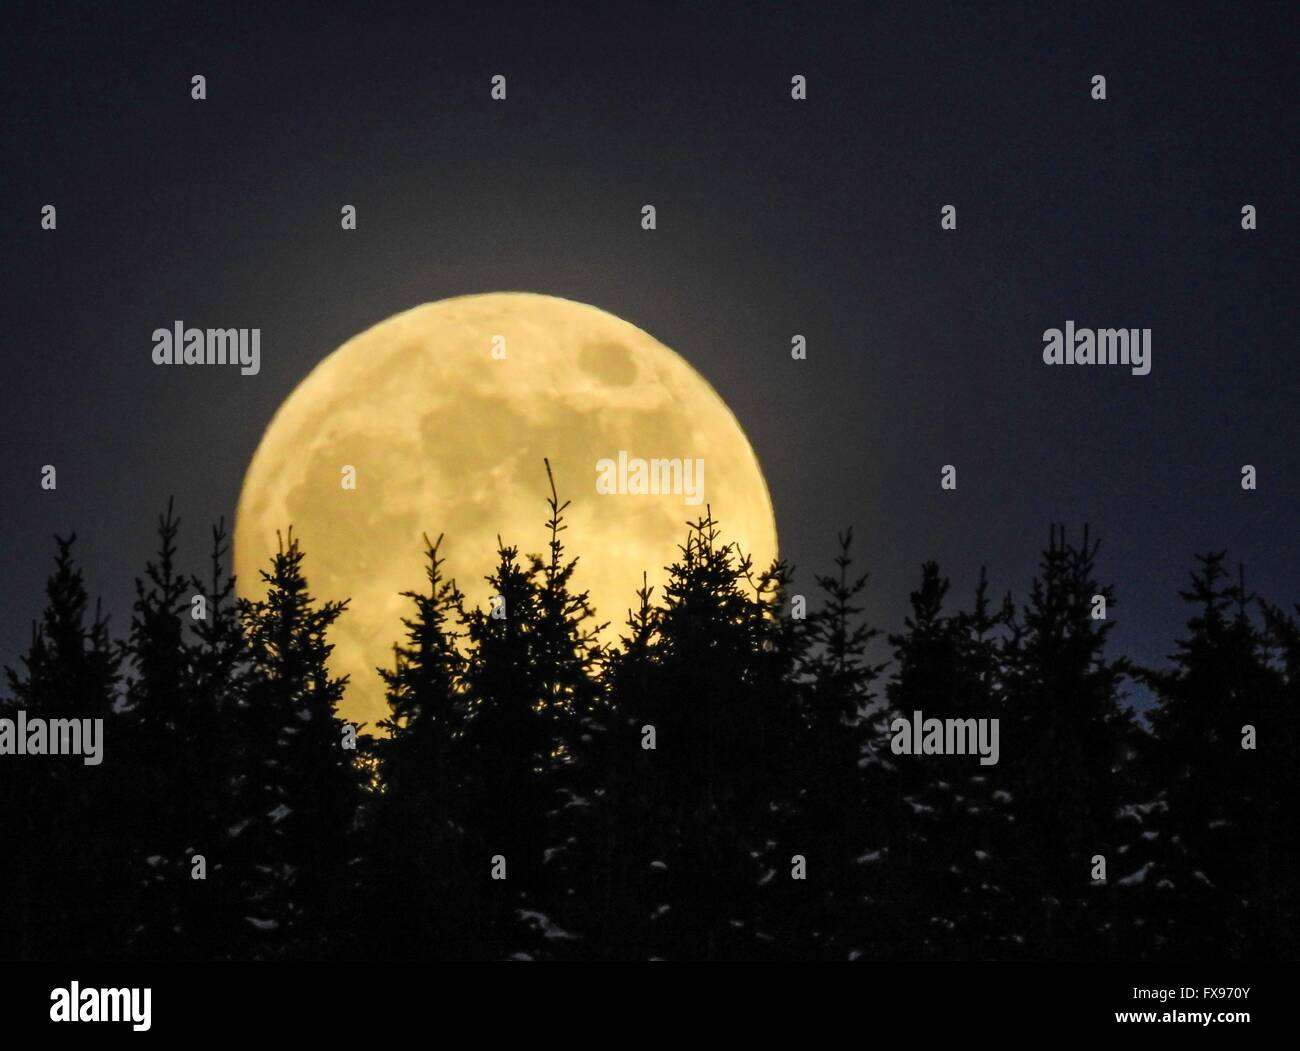 Moonrise Over Forest, March 2016 - Stock Image